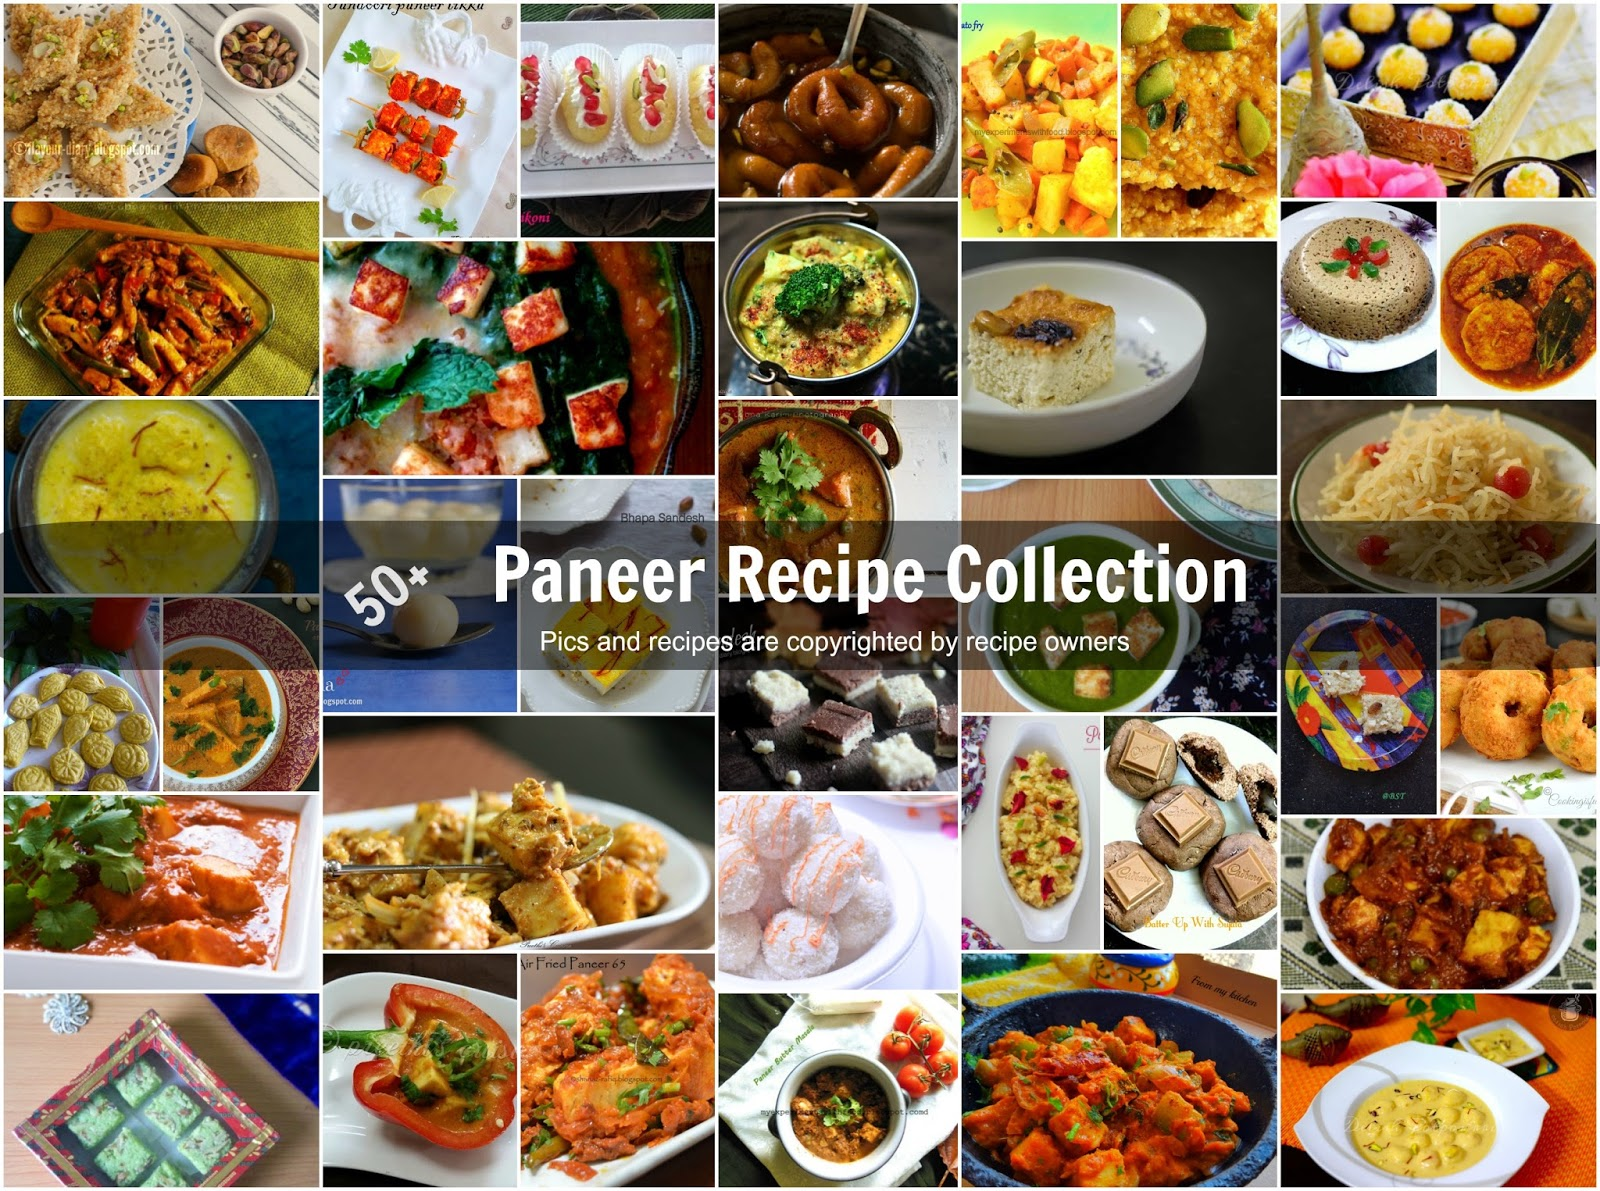 Indian food recipes indian recipes desi food desi recipes paneer recipes starter curries and dessert recipes indian vegetarian recipes forumfinder Gallery